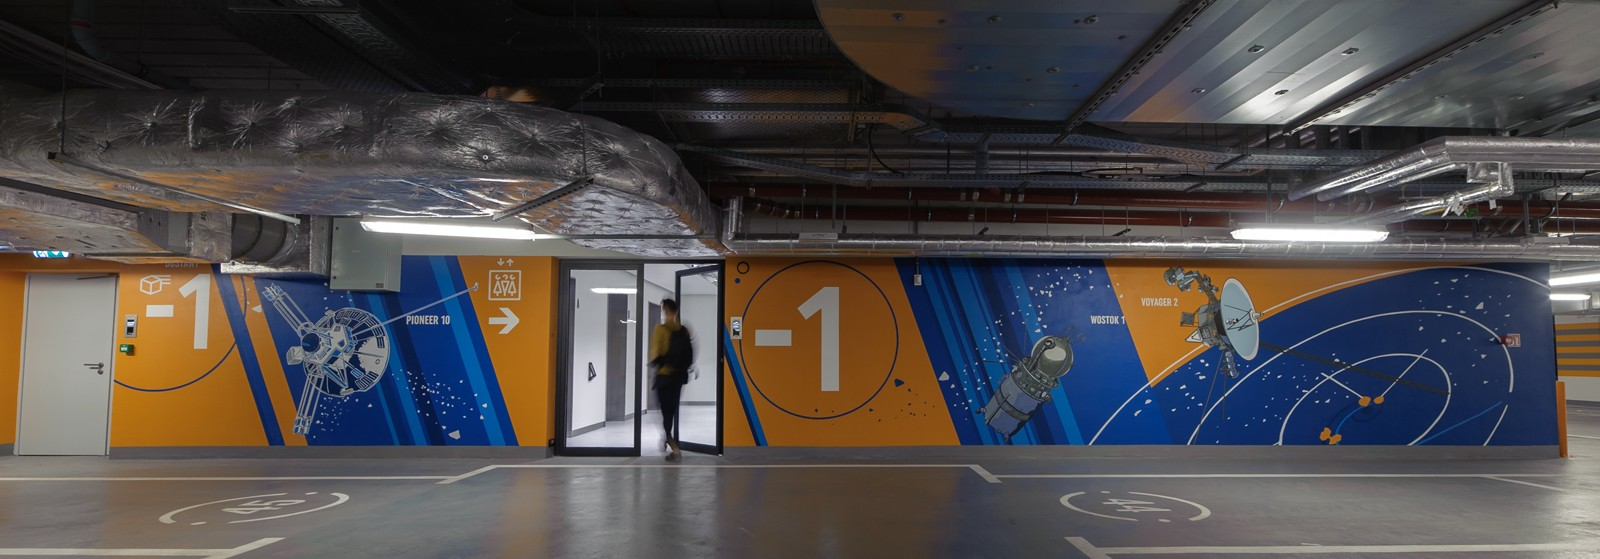 Wall design in Proximo office building in Warsaw's Wola district with a painted Pioneer 10 satellite, a Wostok 1 spaceship, and a Voyager 2 space shuttle | PROXIMO | Portfolio